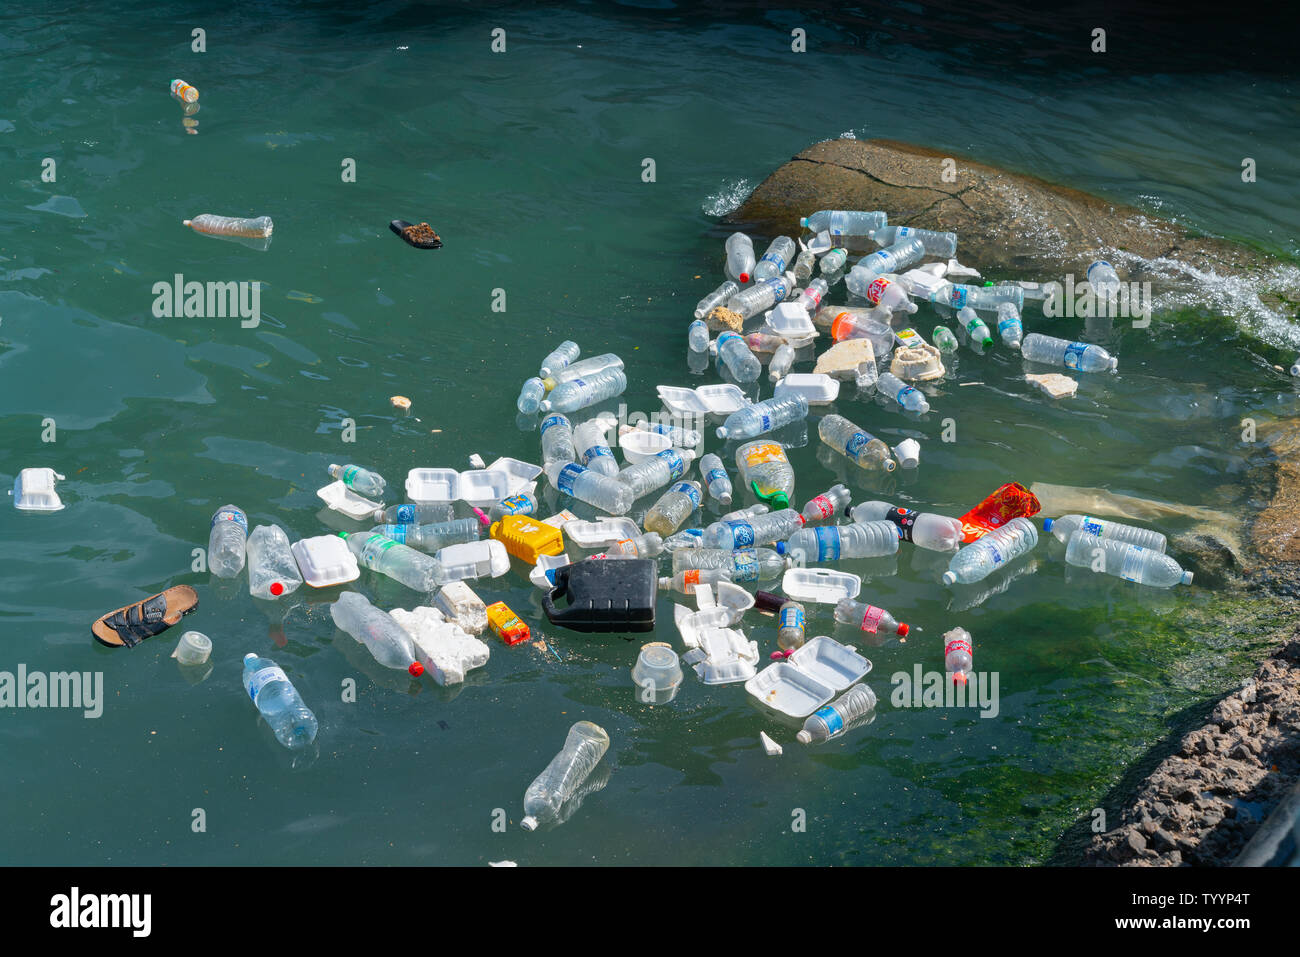 KOTA KINABALU BORNEO -JUNE 1 2019; Sea polution, plastic trash disposed of in harbor. - Stock Image